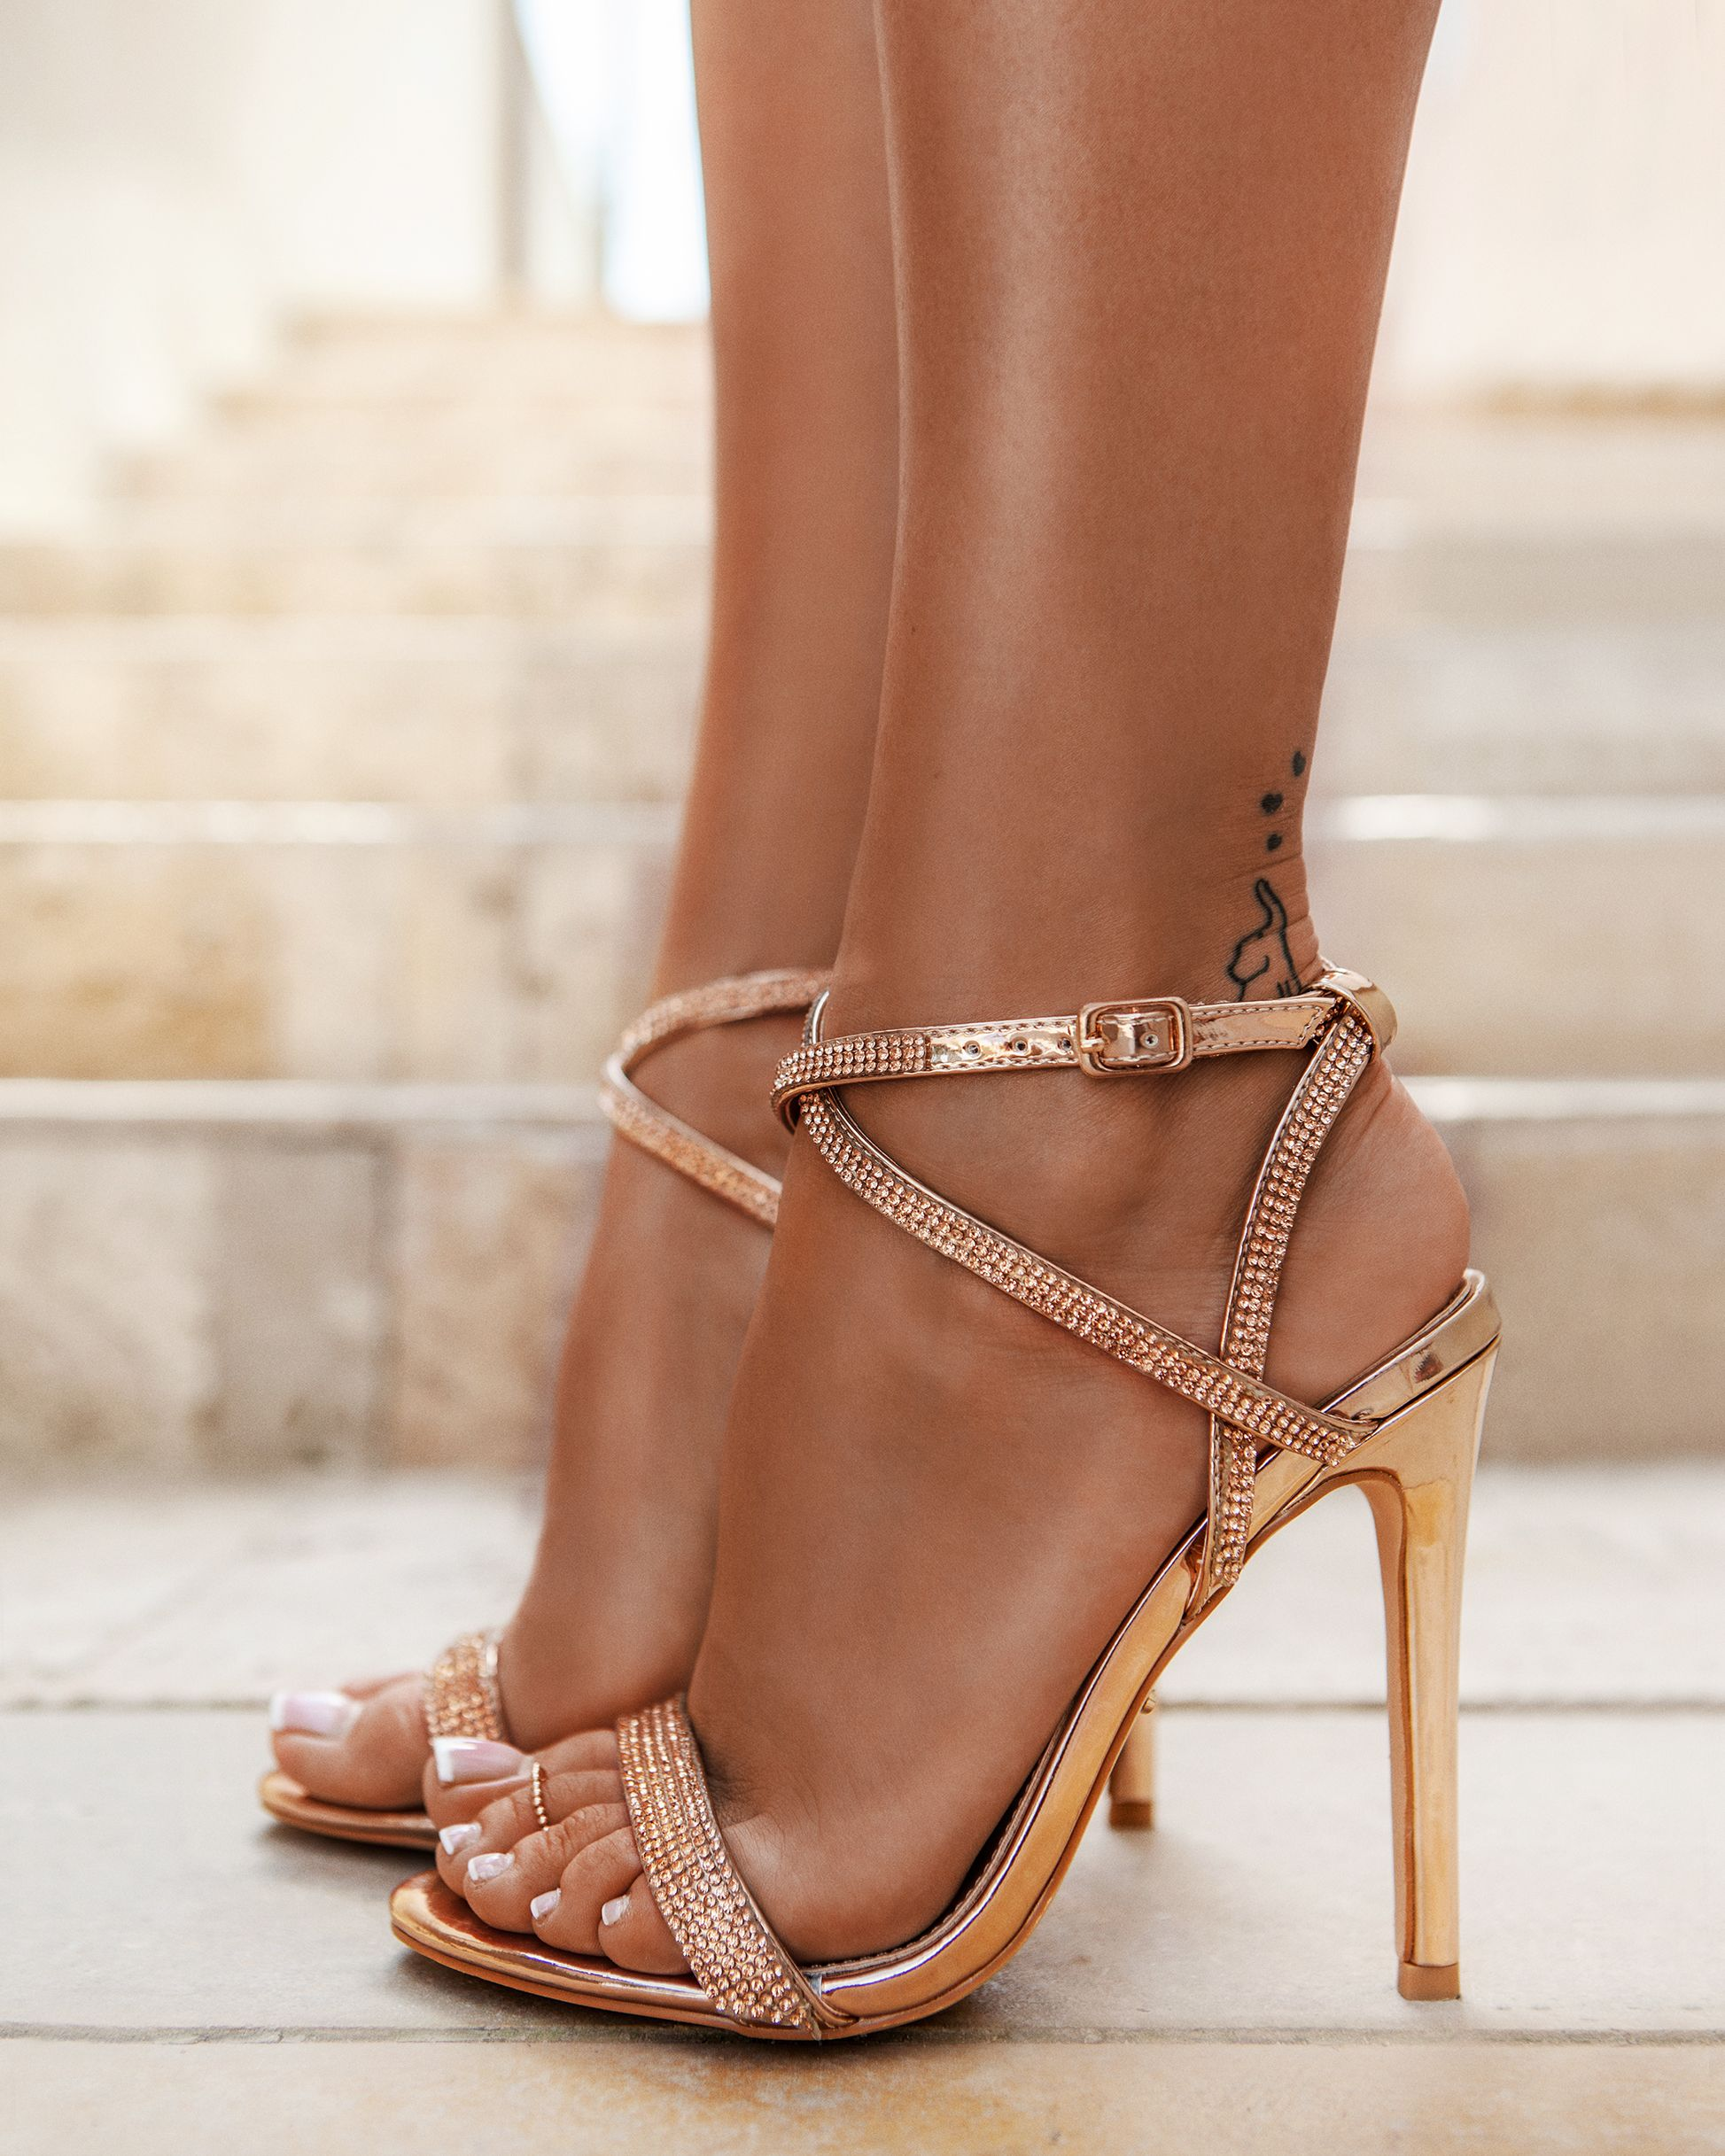 heels, Gold prom shoes, Prom heels